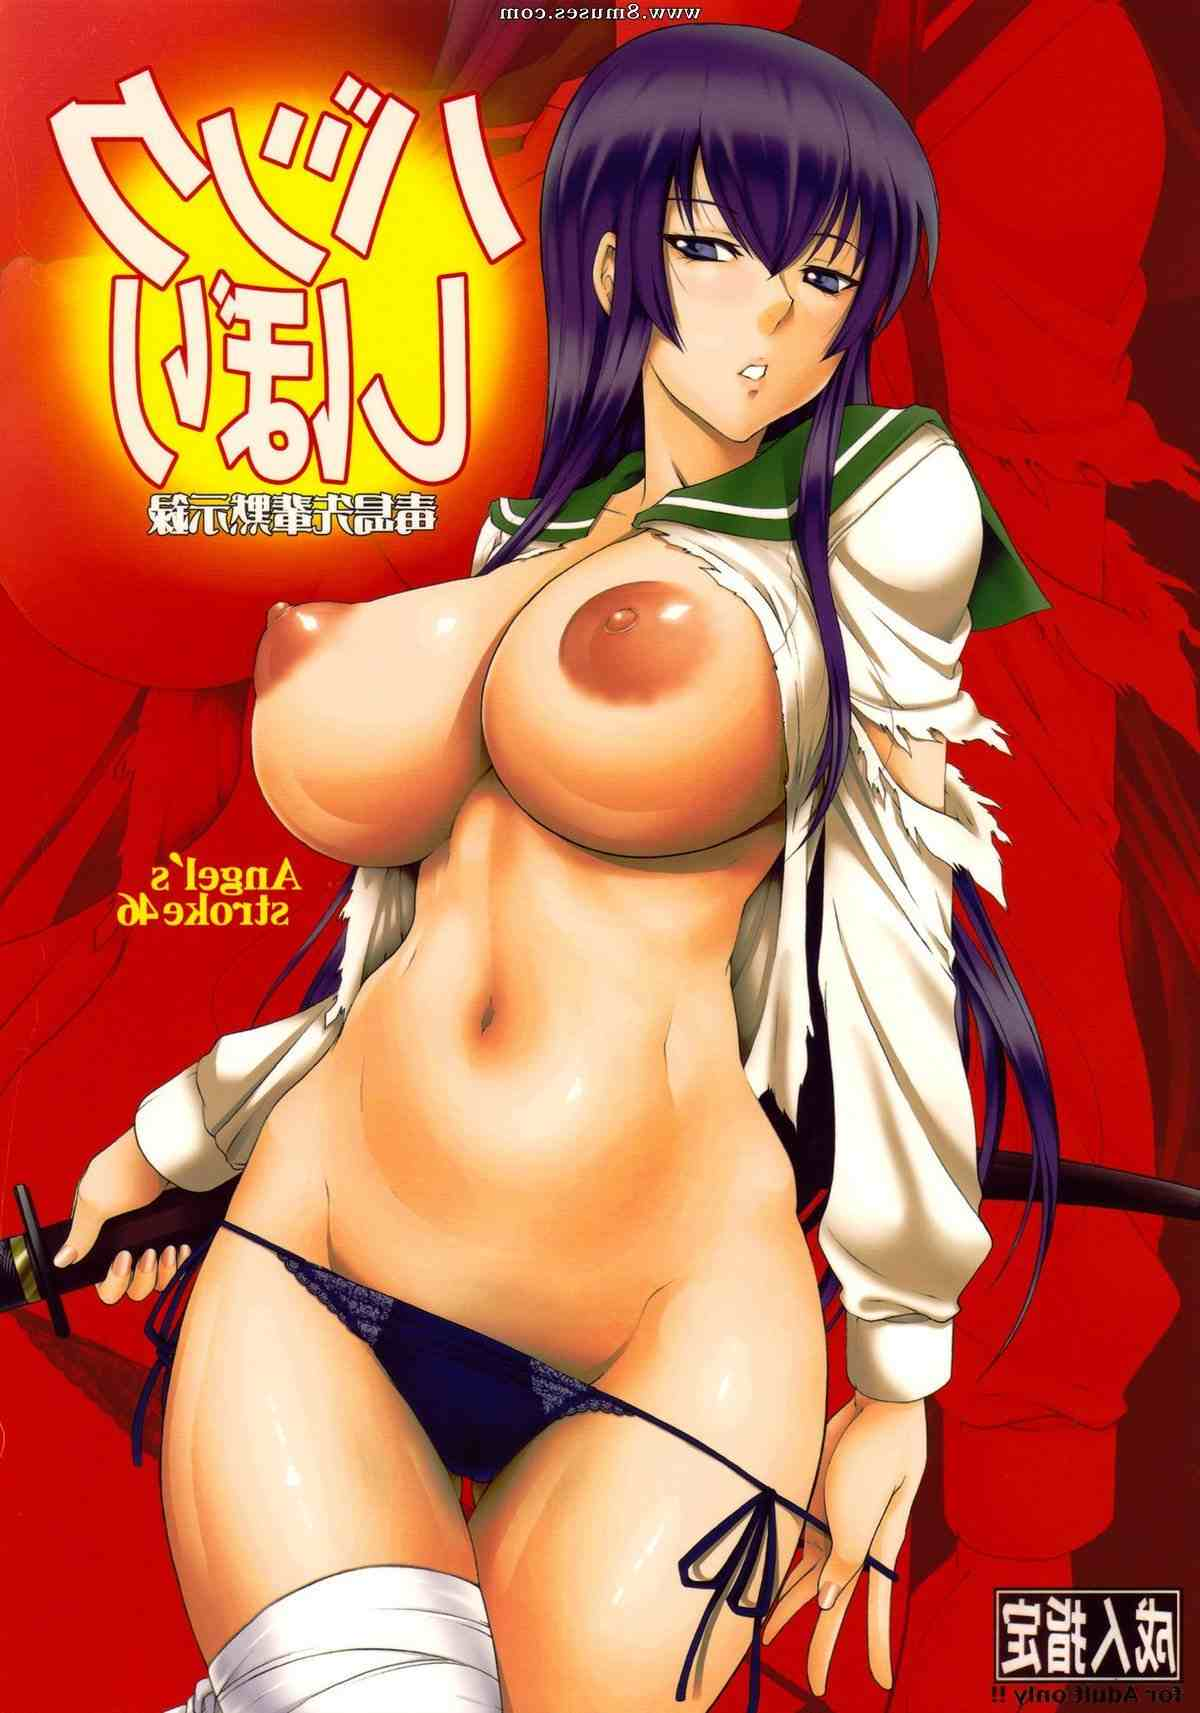 Hentai-and-Manga-English/Kutani/Manga Manga__8muses_-_Sex_and_Porn_Comics_3.jpg